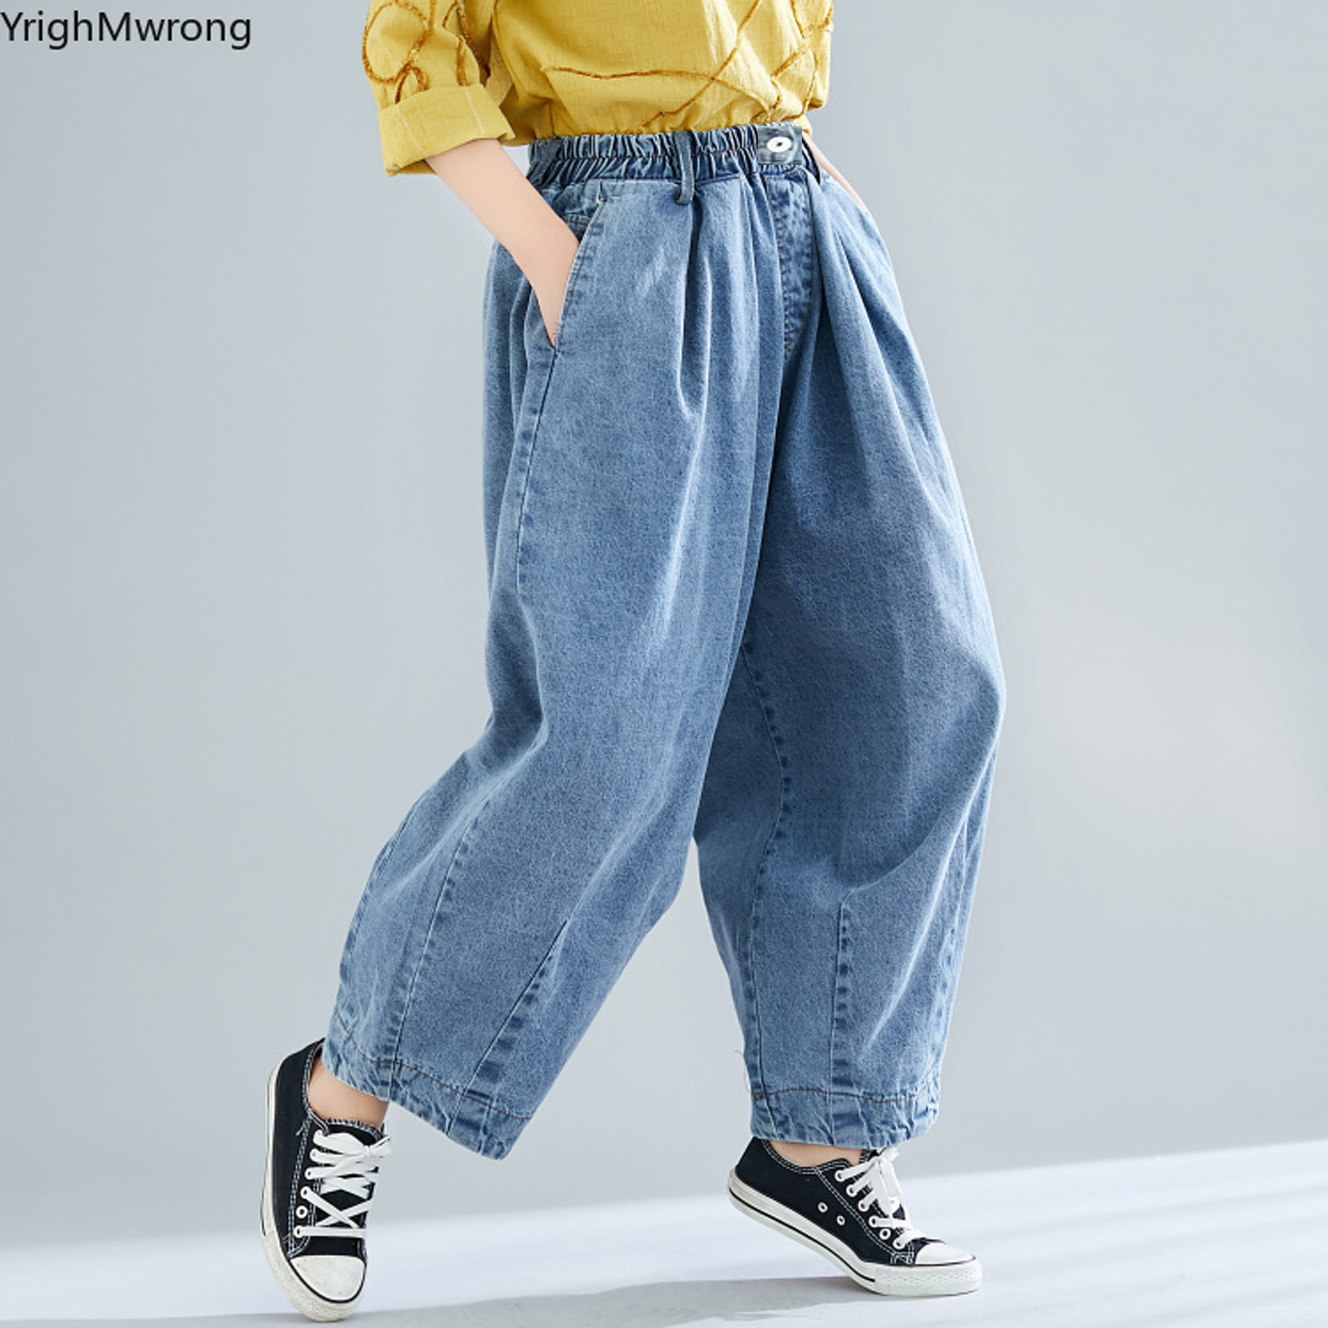 Lady Harem Trousers Baggy Loose Denim Cropped Capri Pants Jeans Oversize Classic